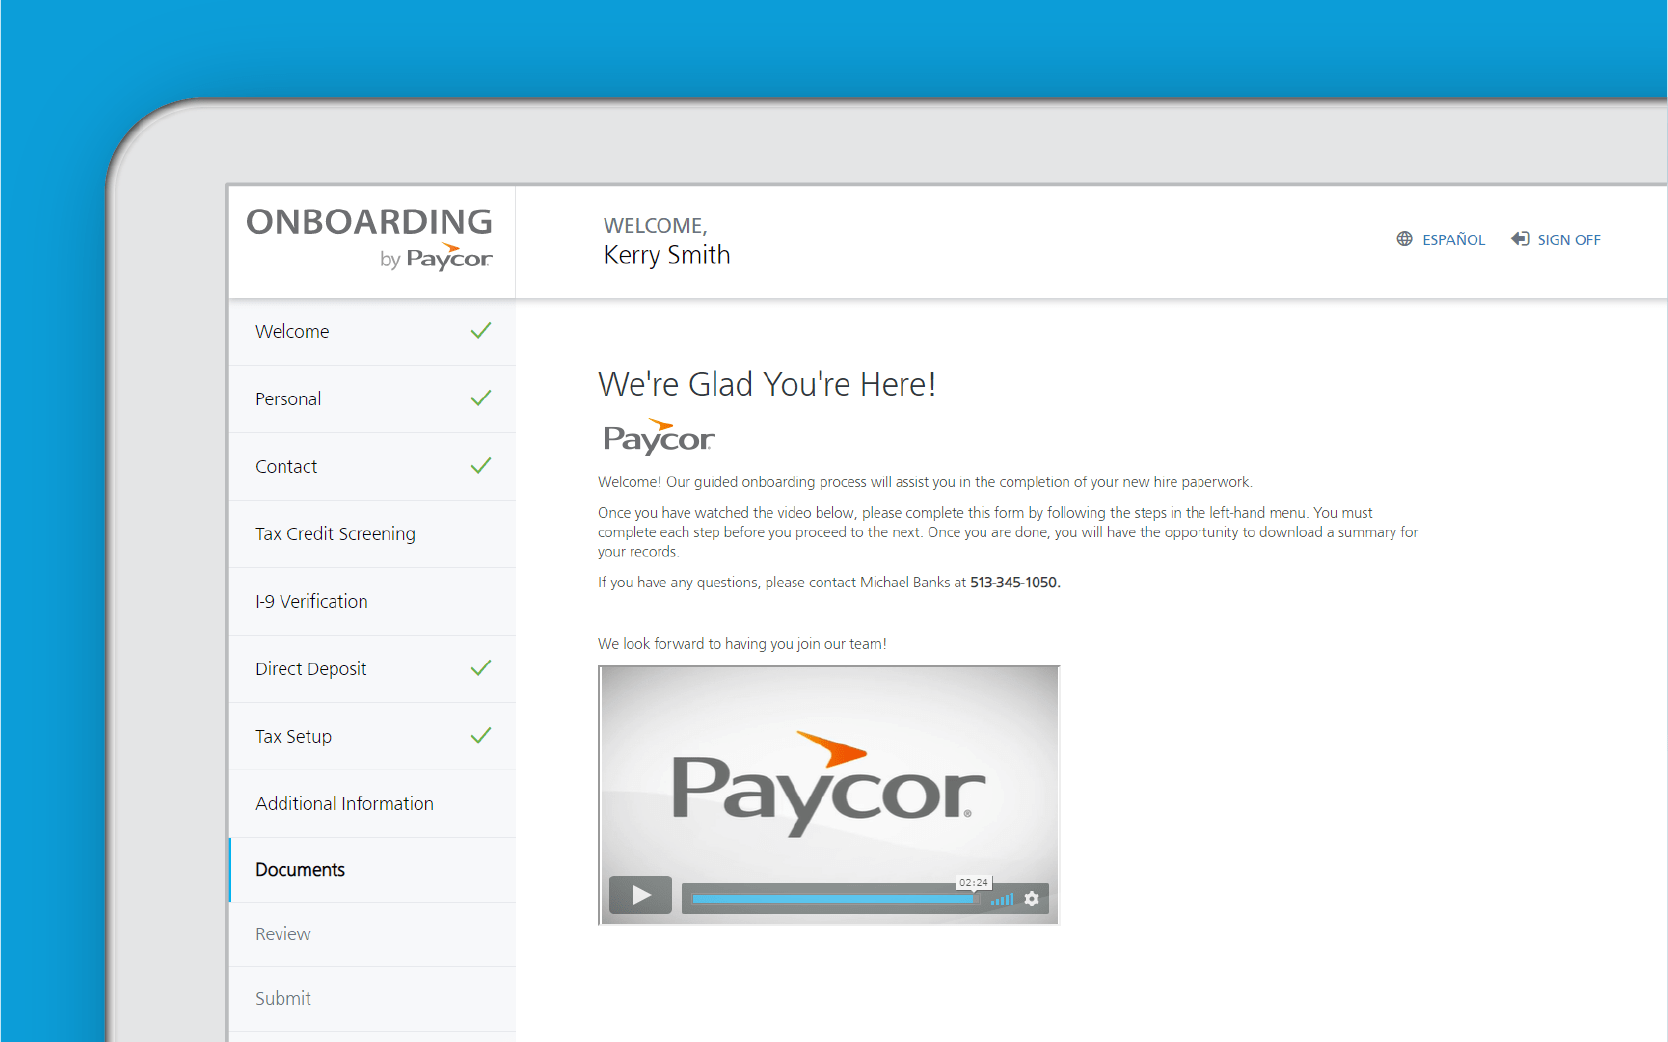 Corner of tablet showing Paycor onboarding dashboard against blue background